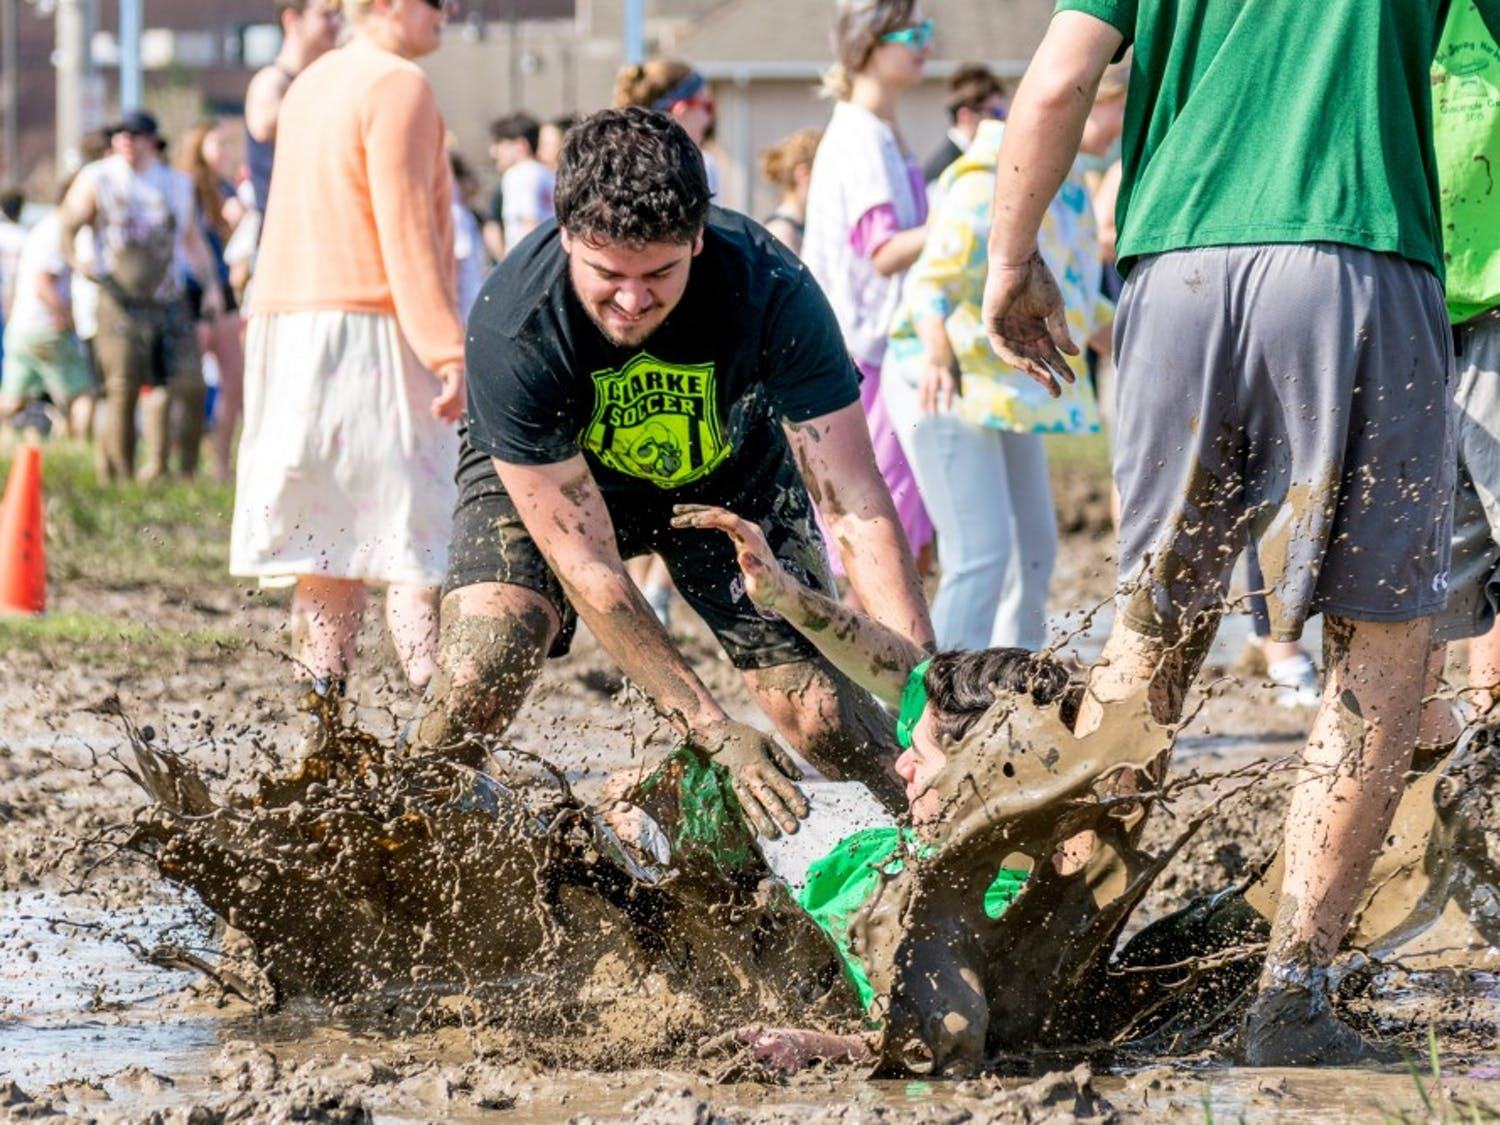 Oozefest, UB's annual mud volleyball tournament, celebrates its 35th anniversary on May 4. The event was created in 1984 as a way to help students bond and de-stress before exams.